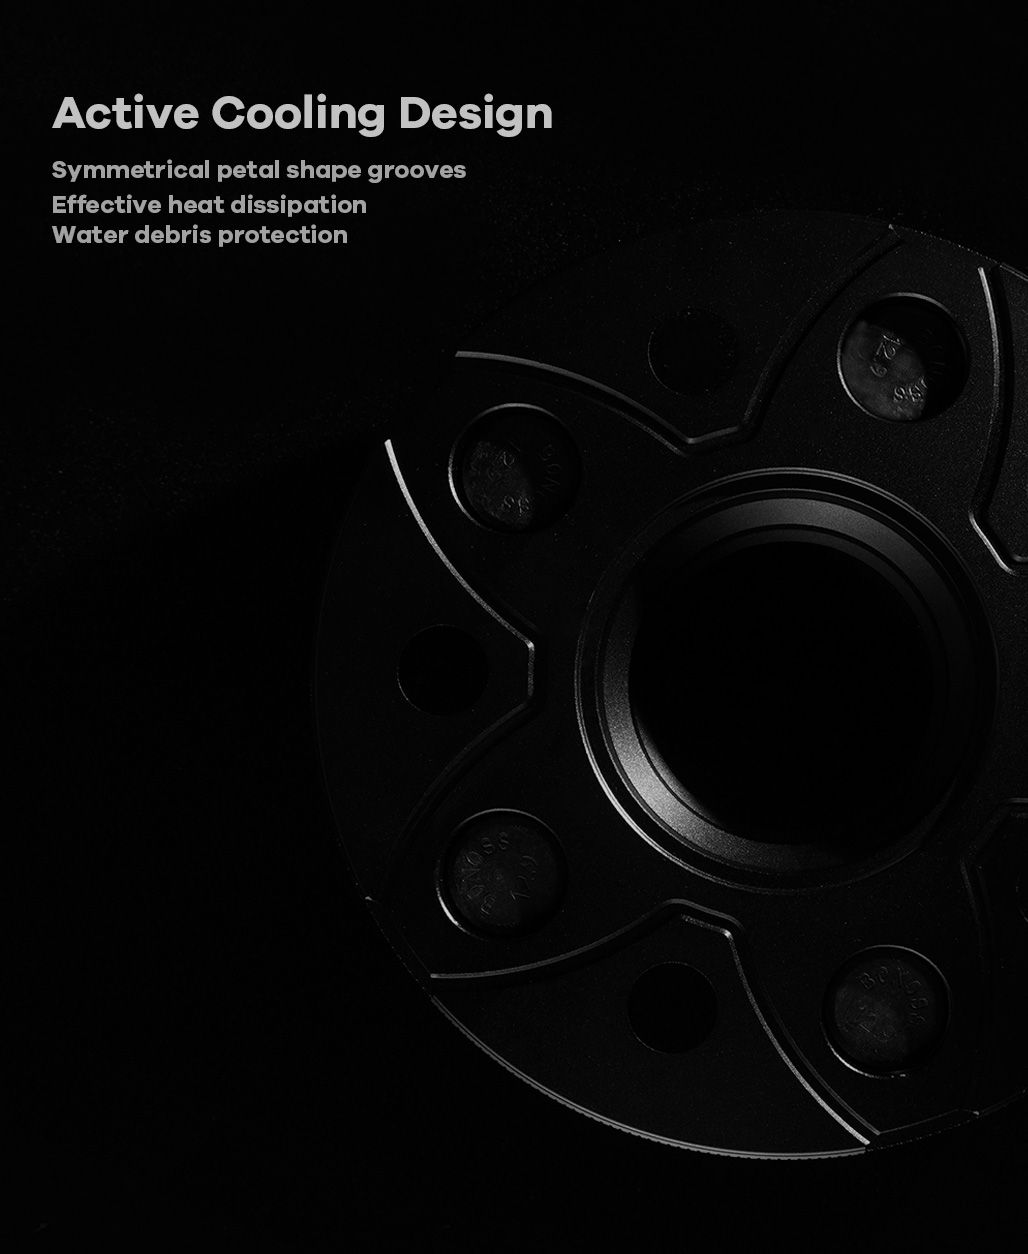 BONOSS Forged Active Cooling Wheel Spacers Hubcentric PCD5x114.3 CB67.1 AL6061-T6 for Chrysler Sebring JS 2007-2010 (3)